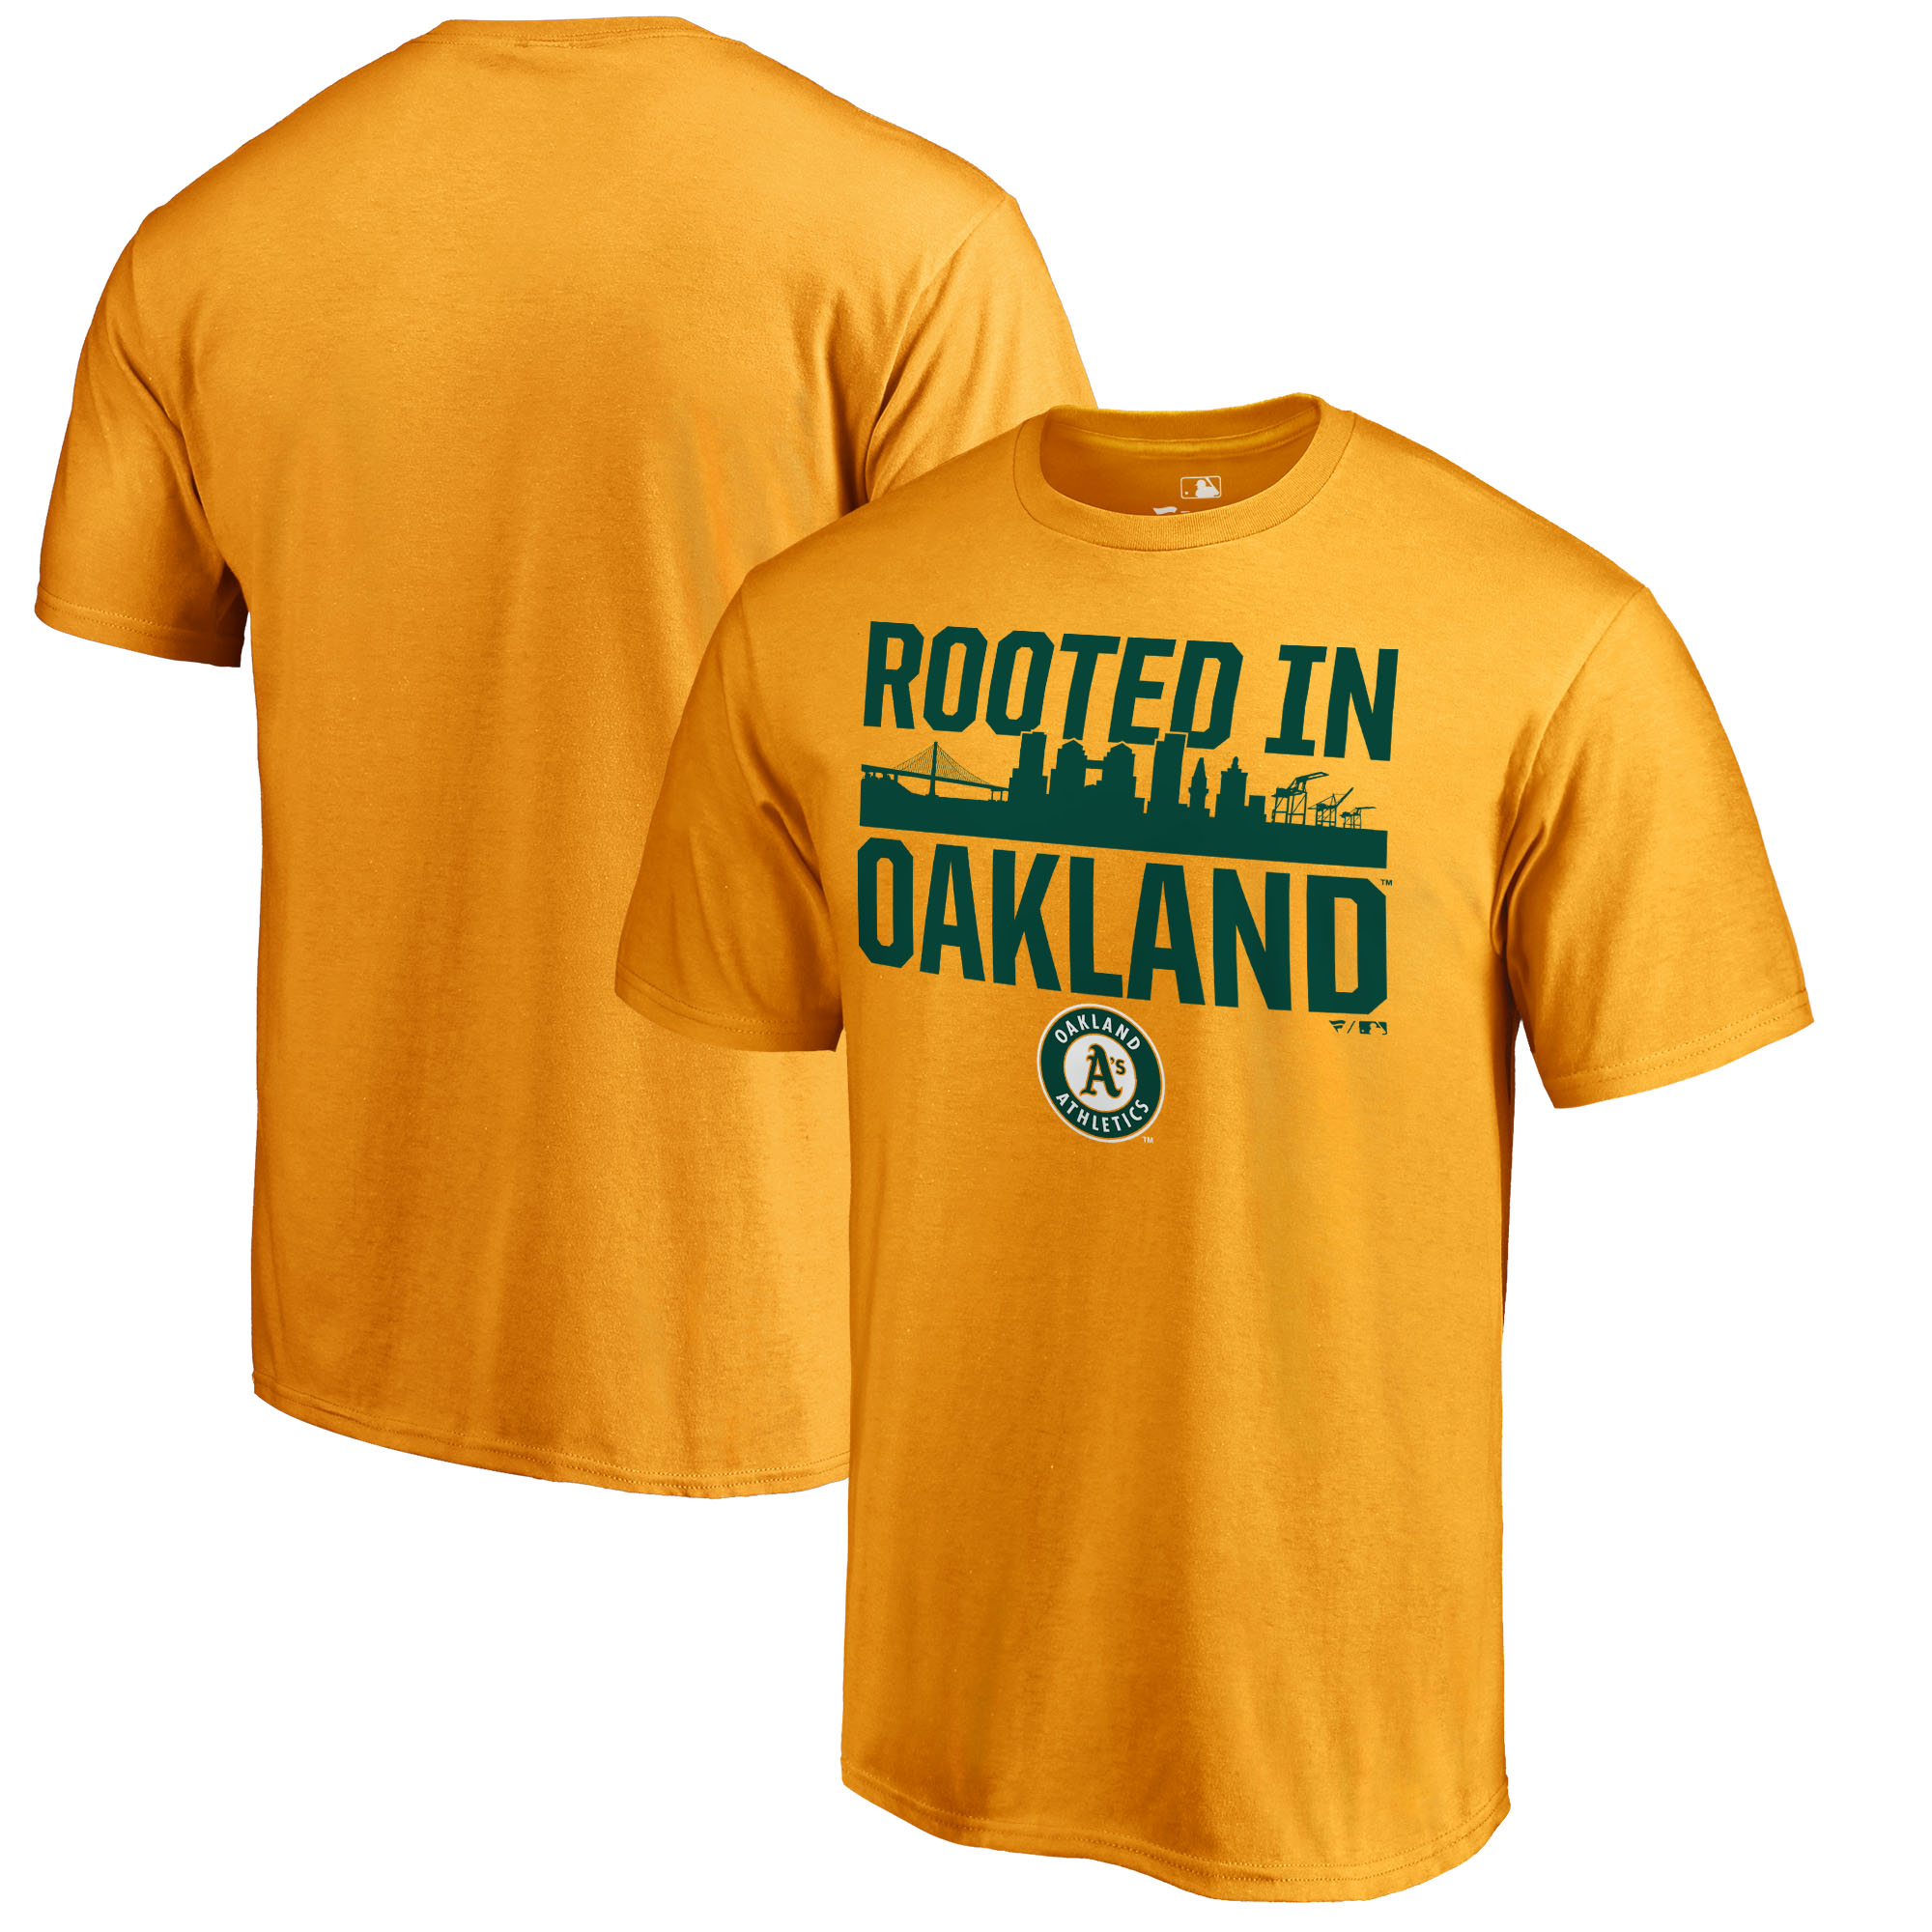 Oakland Athletics Fanatics Branded Hometown Collection Oakland Roots T-Shirt - Gold